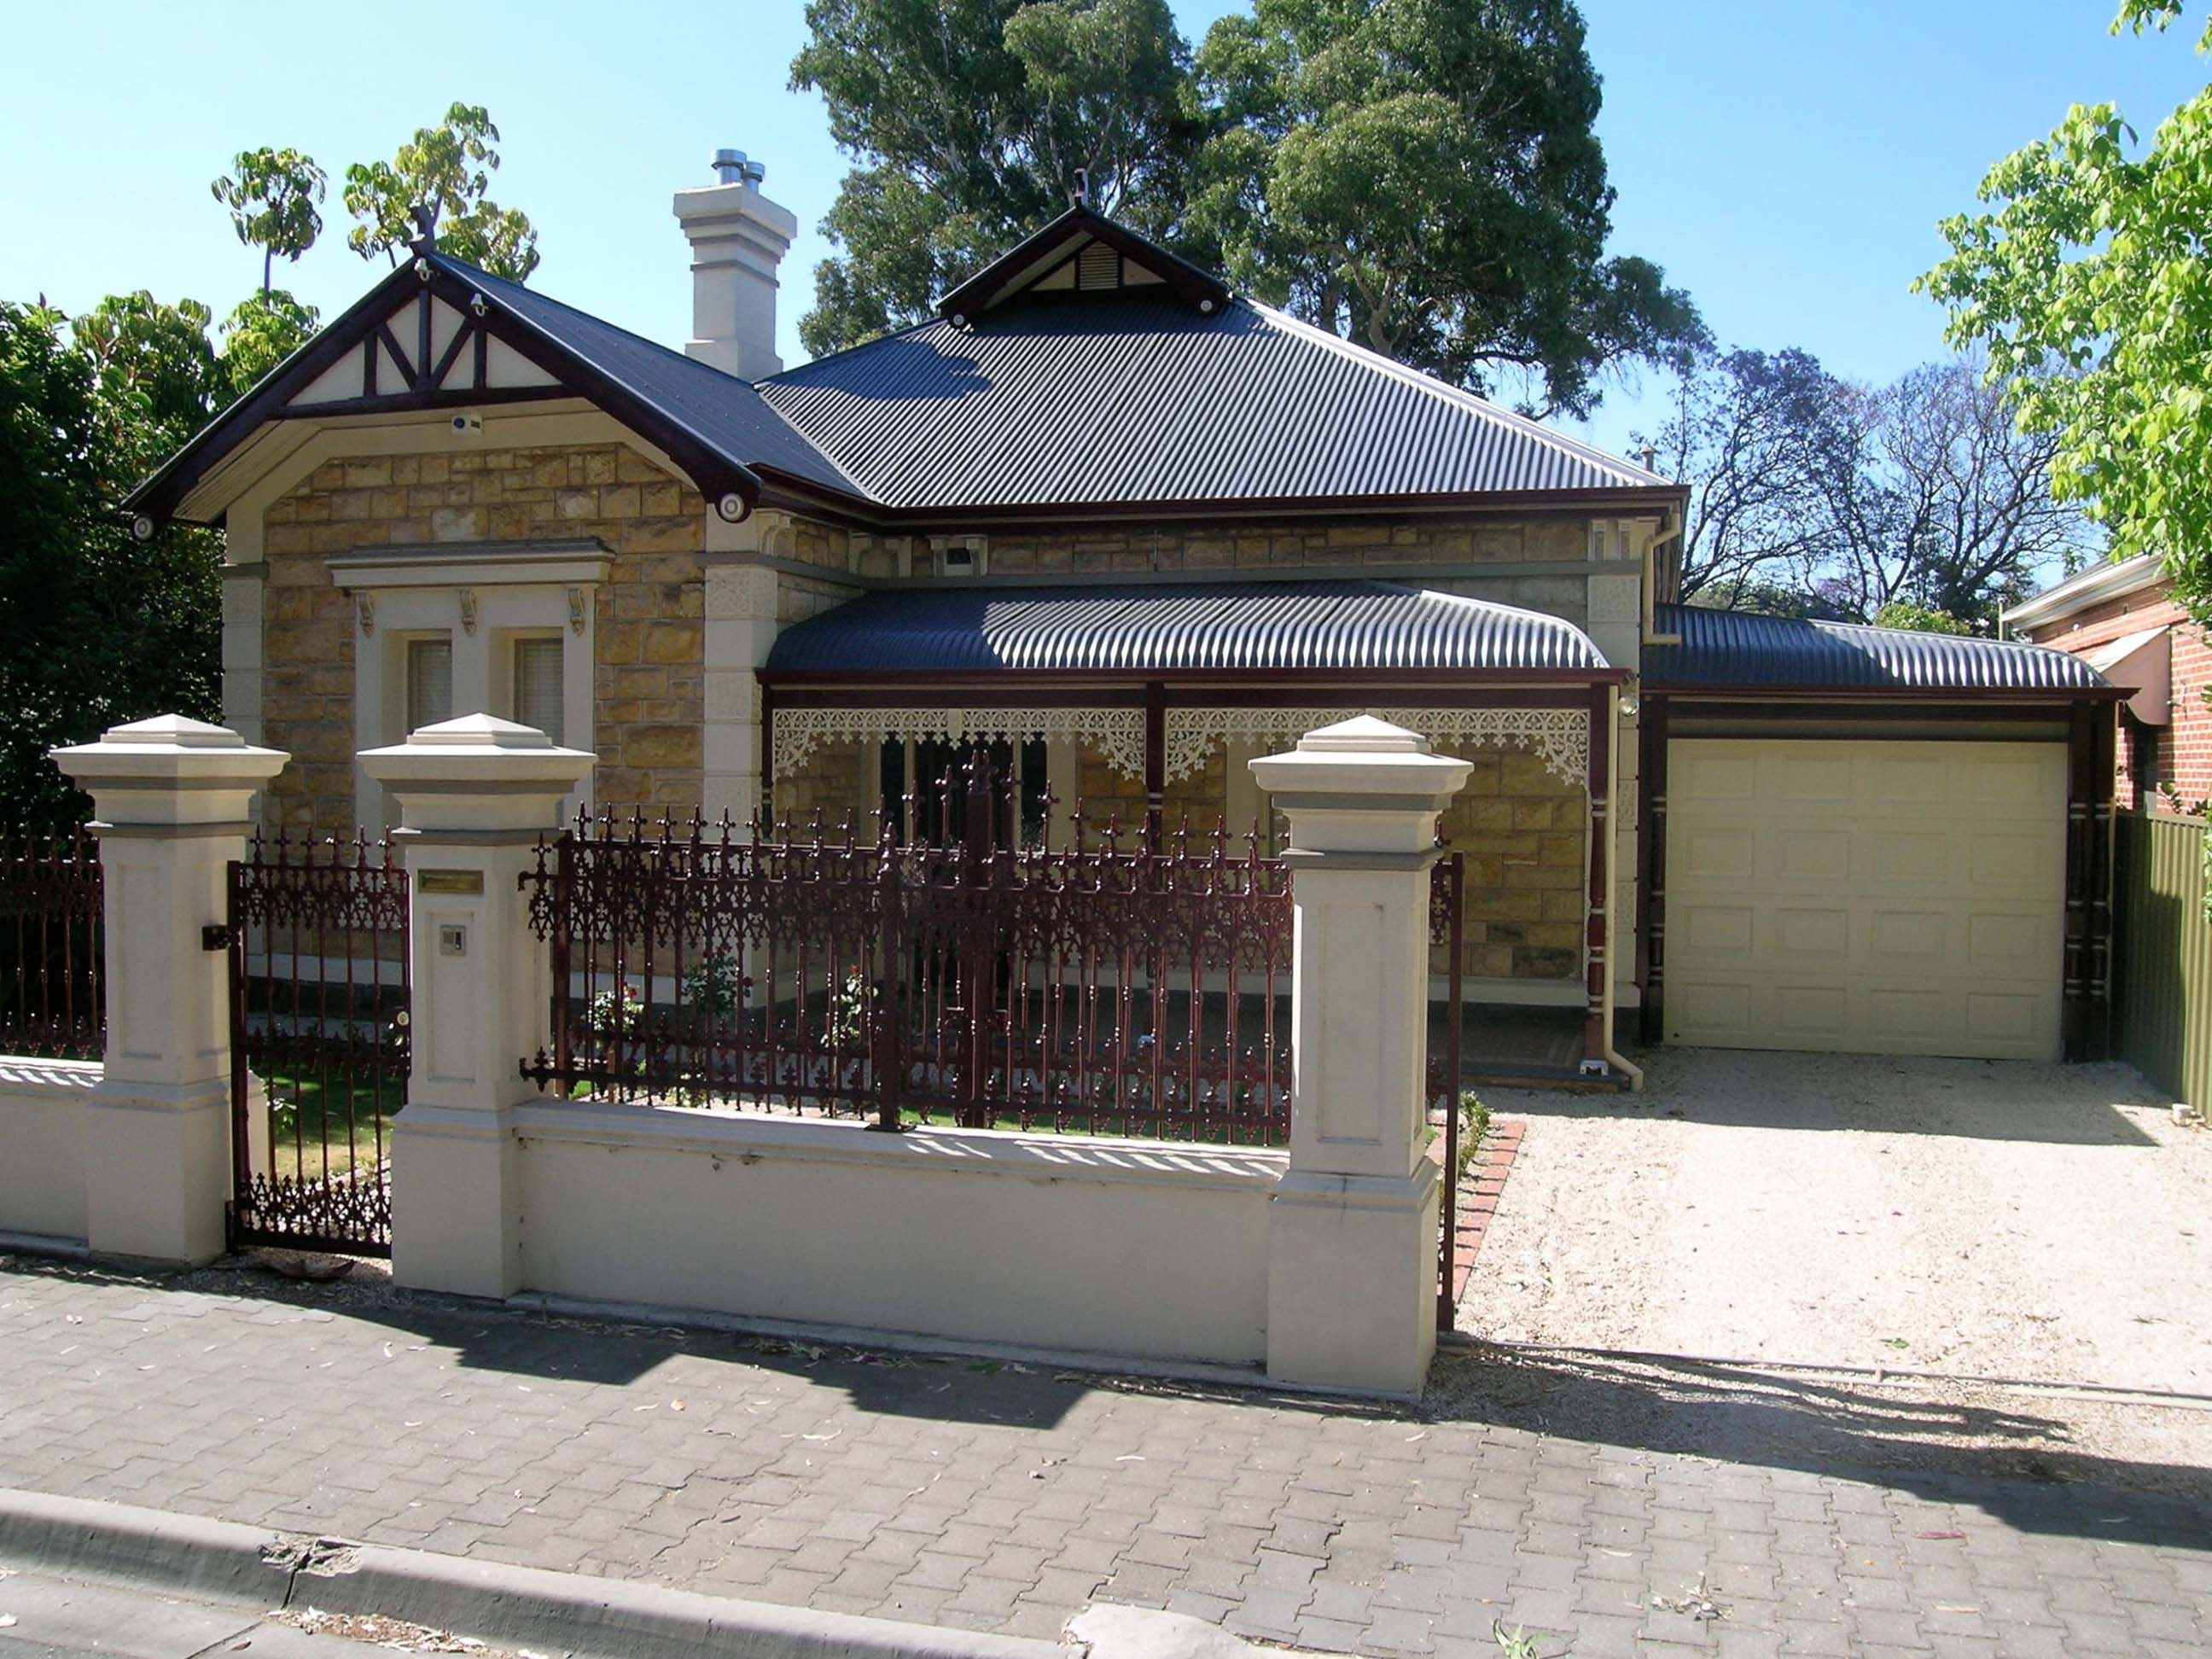 Google Image Result For Https Traditionalroofscapes Com Au Assets Gallery Images Wood 20 20hine 20 20unley 20park1427718277 In 2020 Roof Panels Roofing Roof Repair